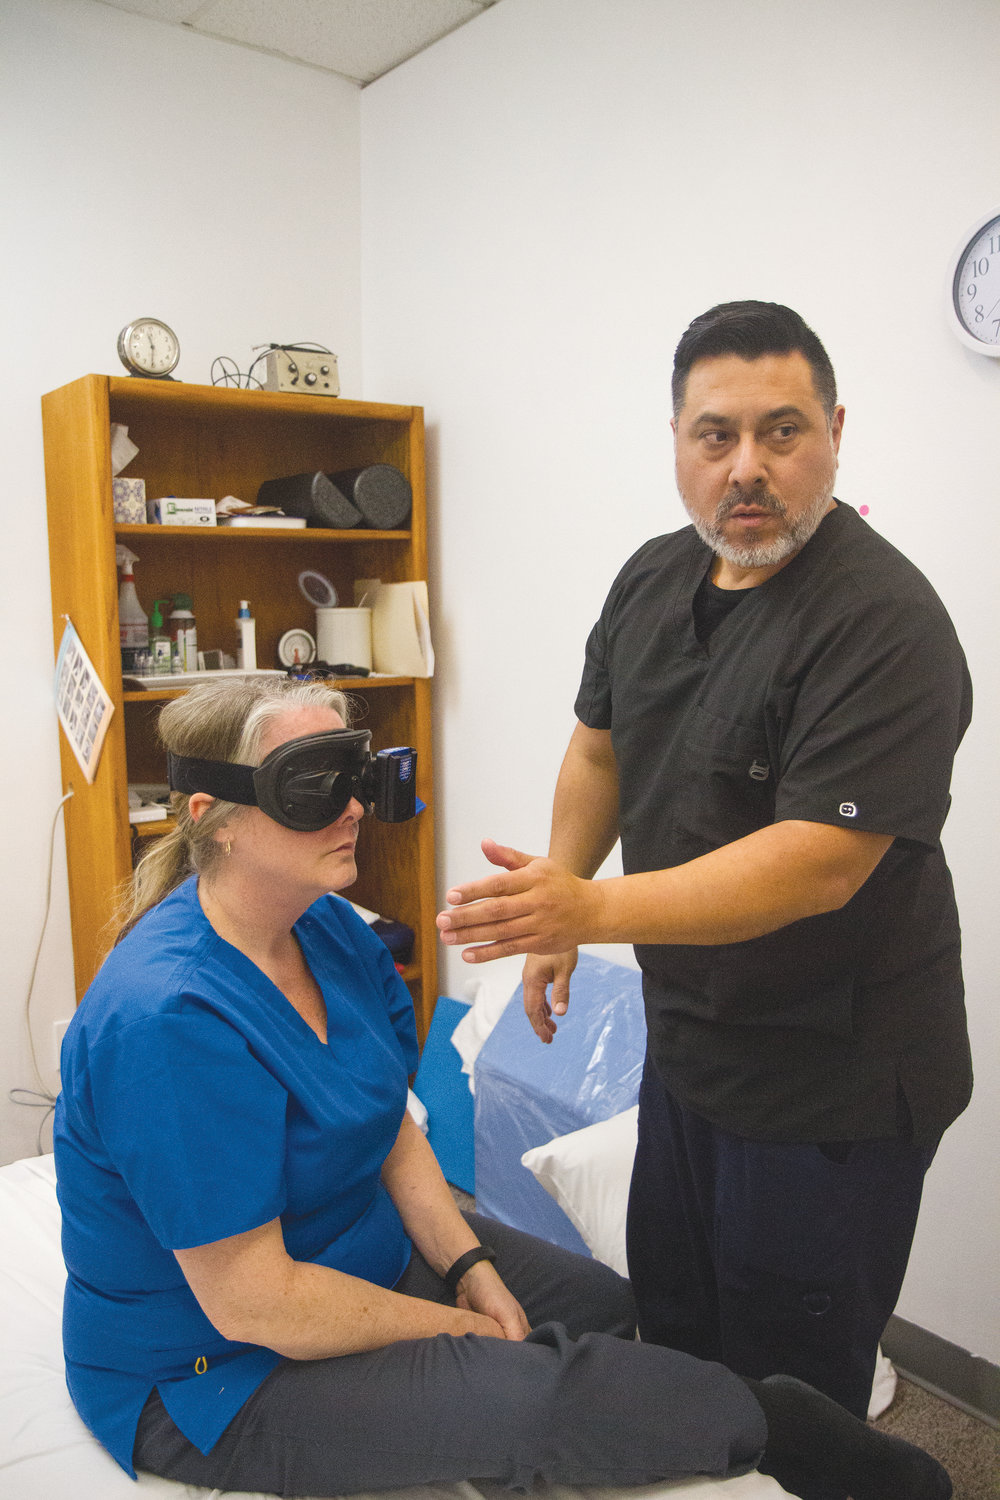 Barbara Arrowsmith, a physical therapist assistant at Apex Balance and Rehab, models the videonystagmography system, which she and physical therapist Chris Martinez can use to diagnose dizziness issues.